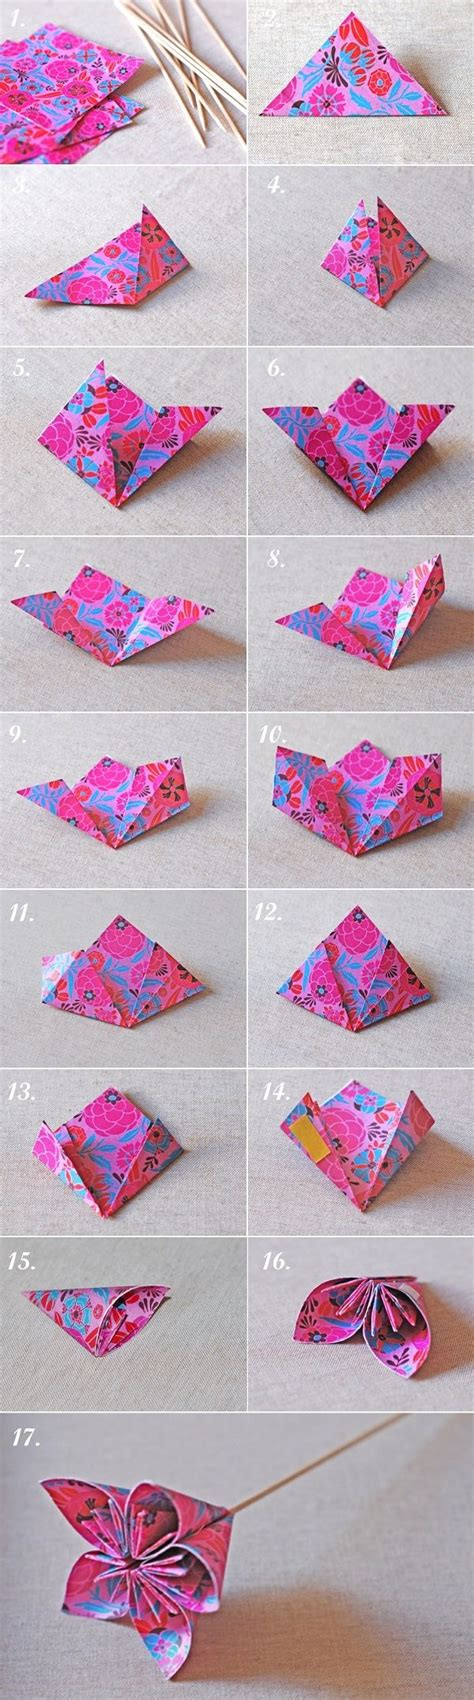 Flores De Origami - origami kusudama flowers just got some of this paper